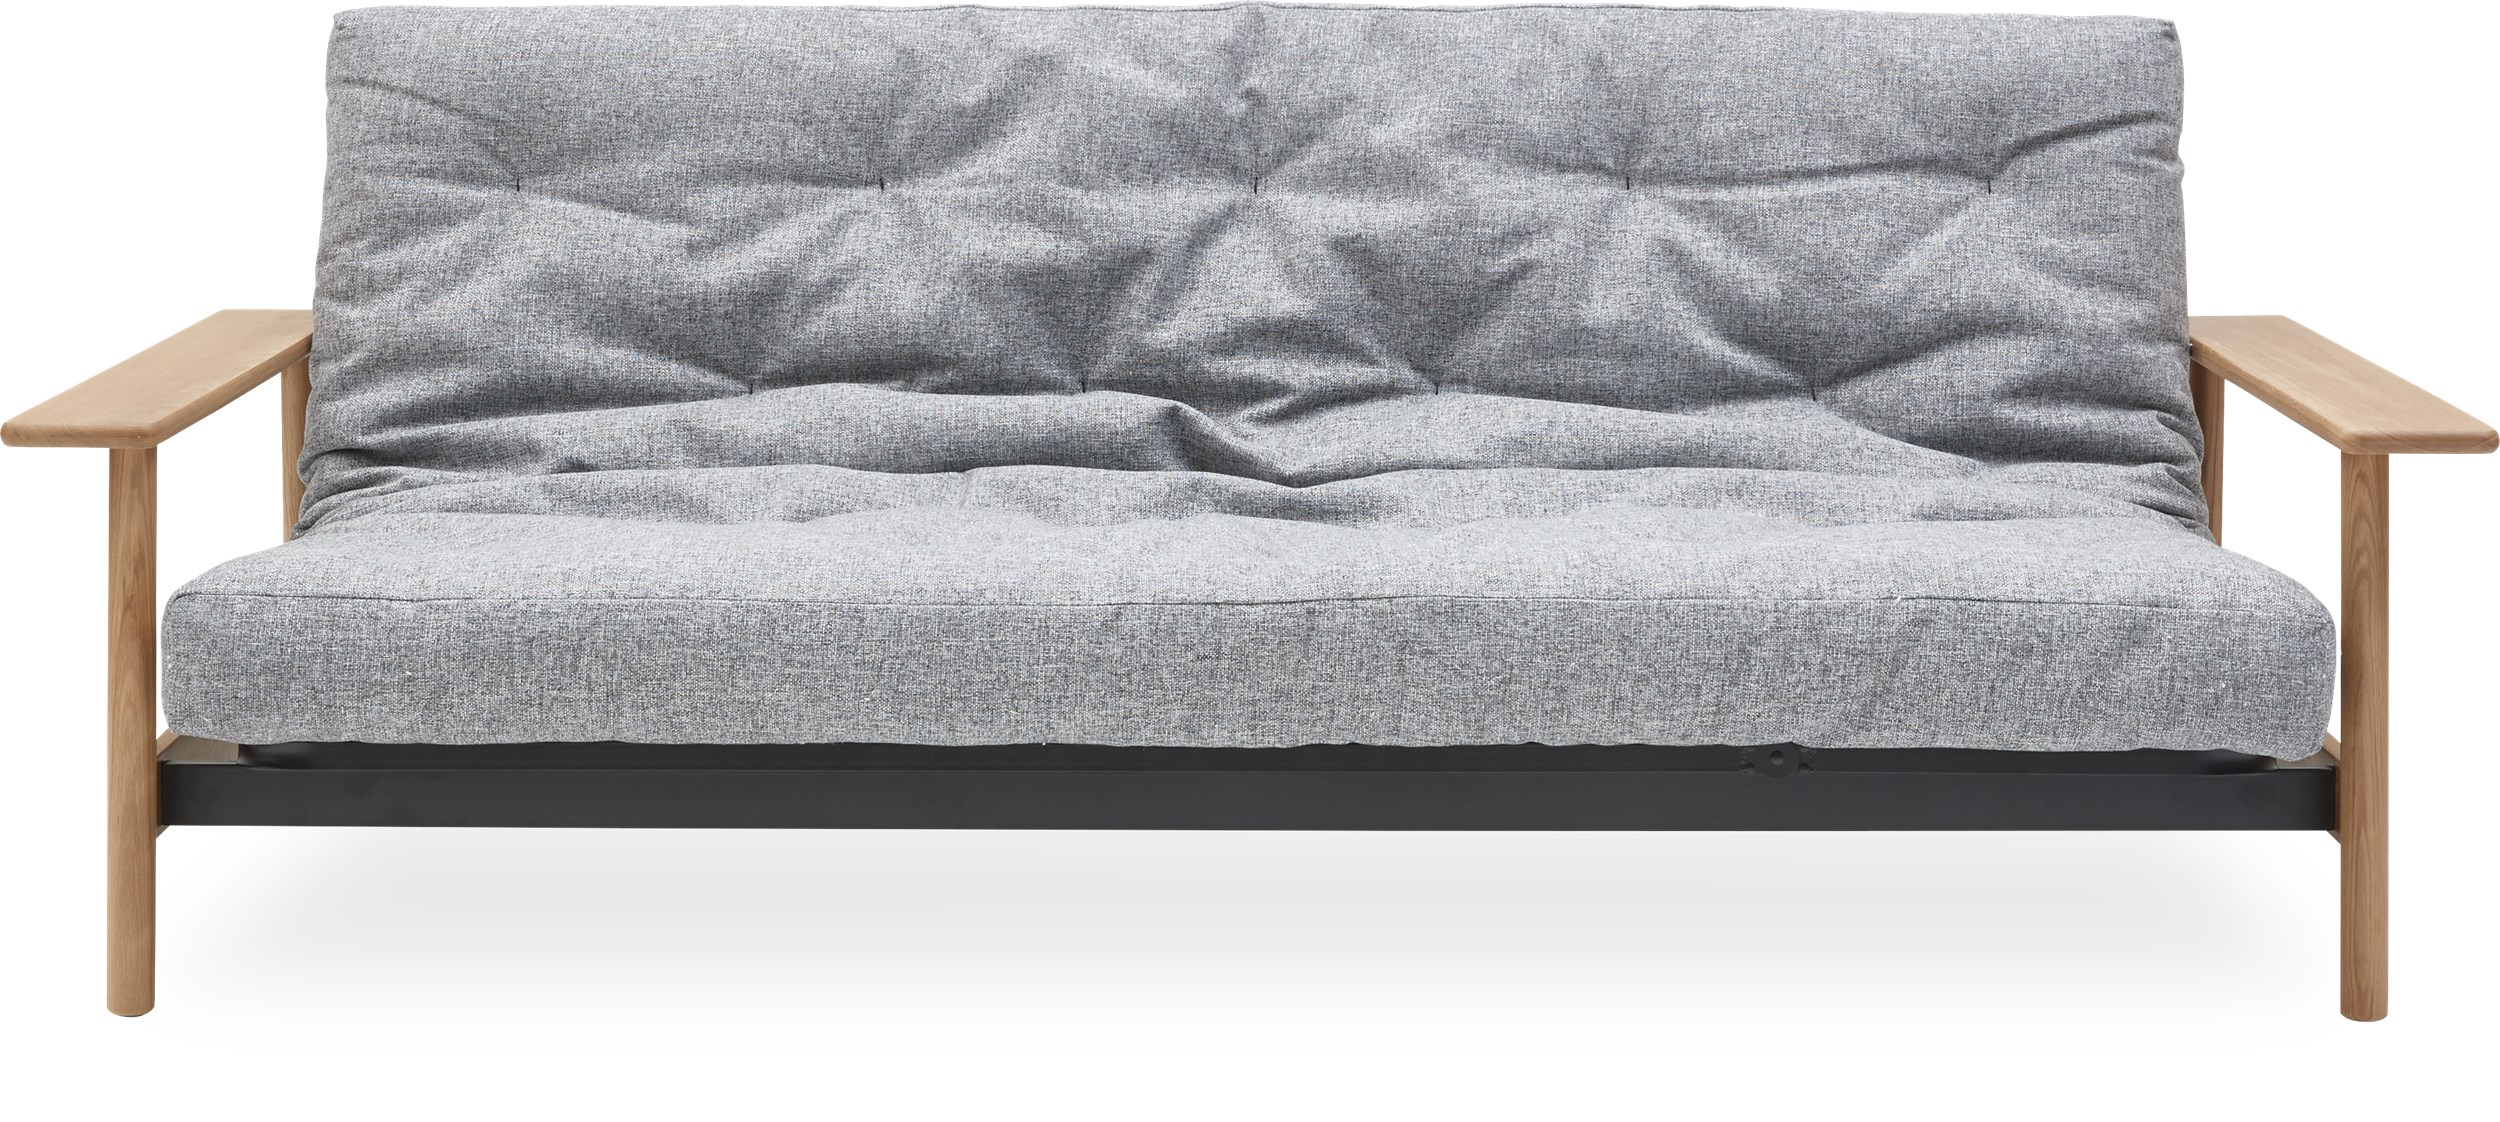 Innovation Living - Balder Spring Round Sovesofa - Sovesofa